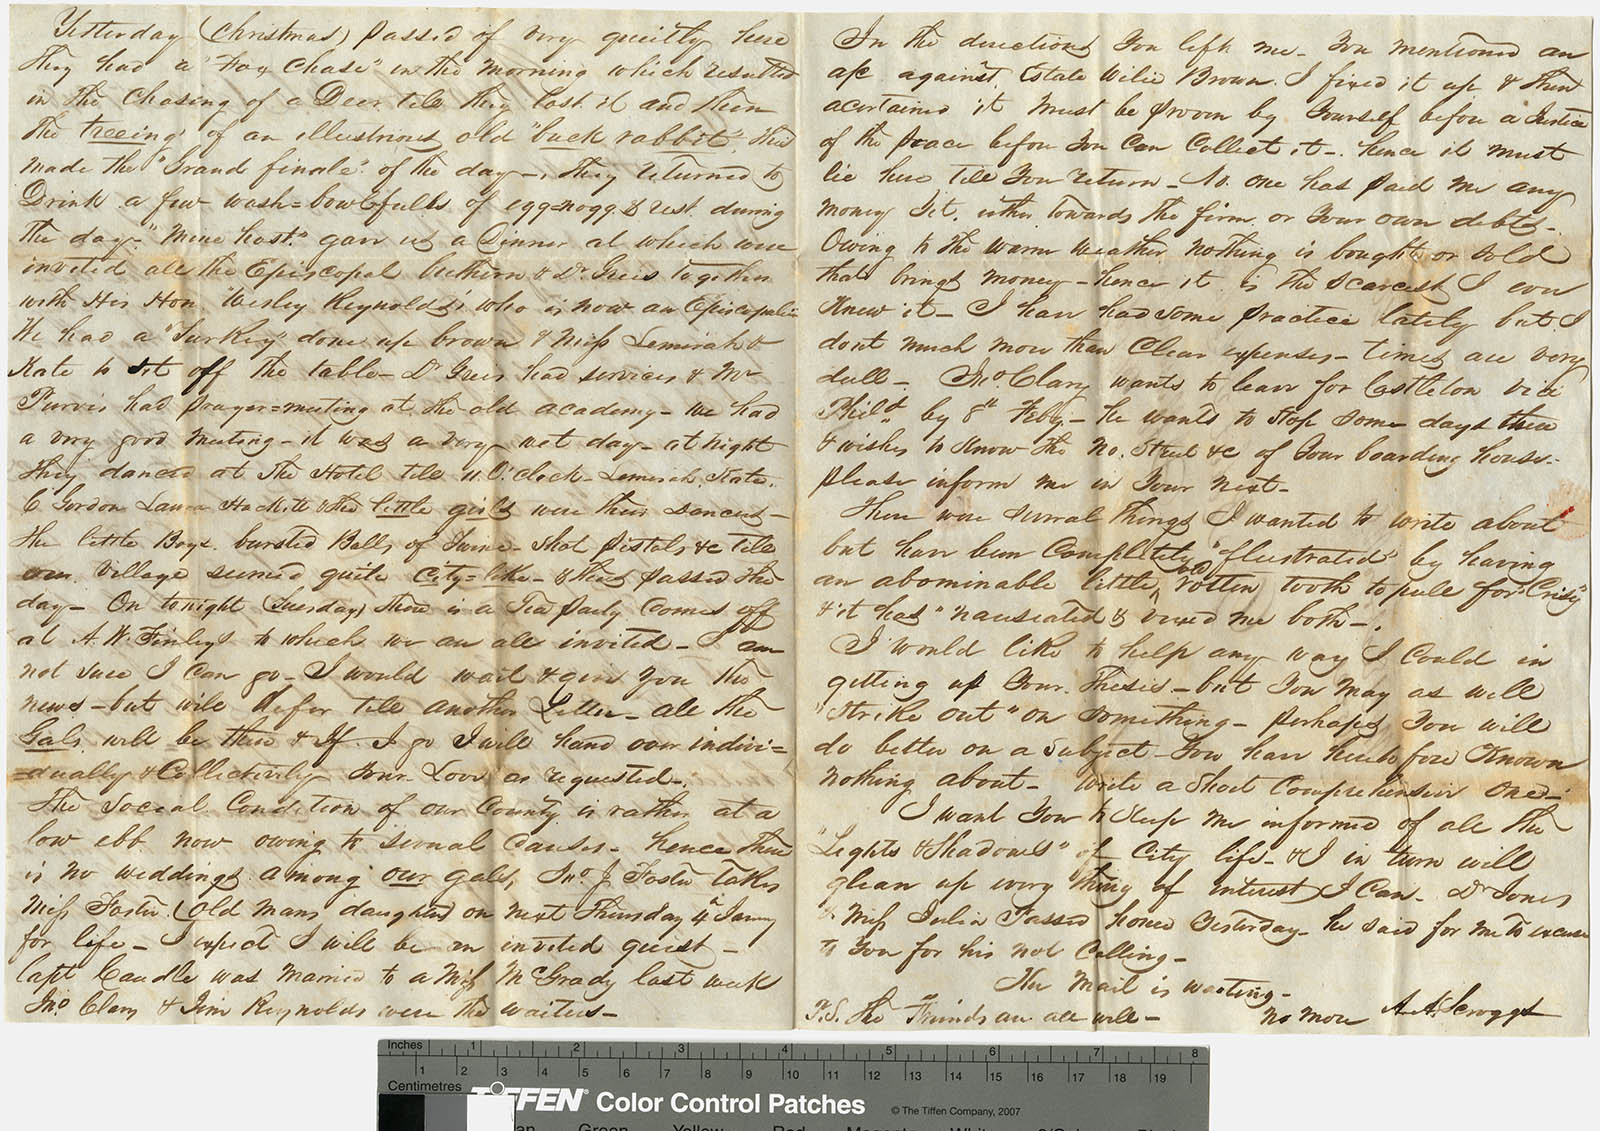 Letter from Dr. A. A. Scroggs of Wilkesboro, N.C., to Dr. Robert F. Hackett at Jefferson